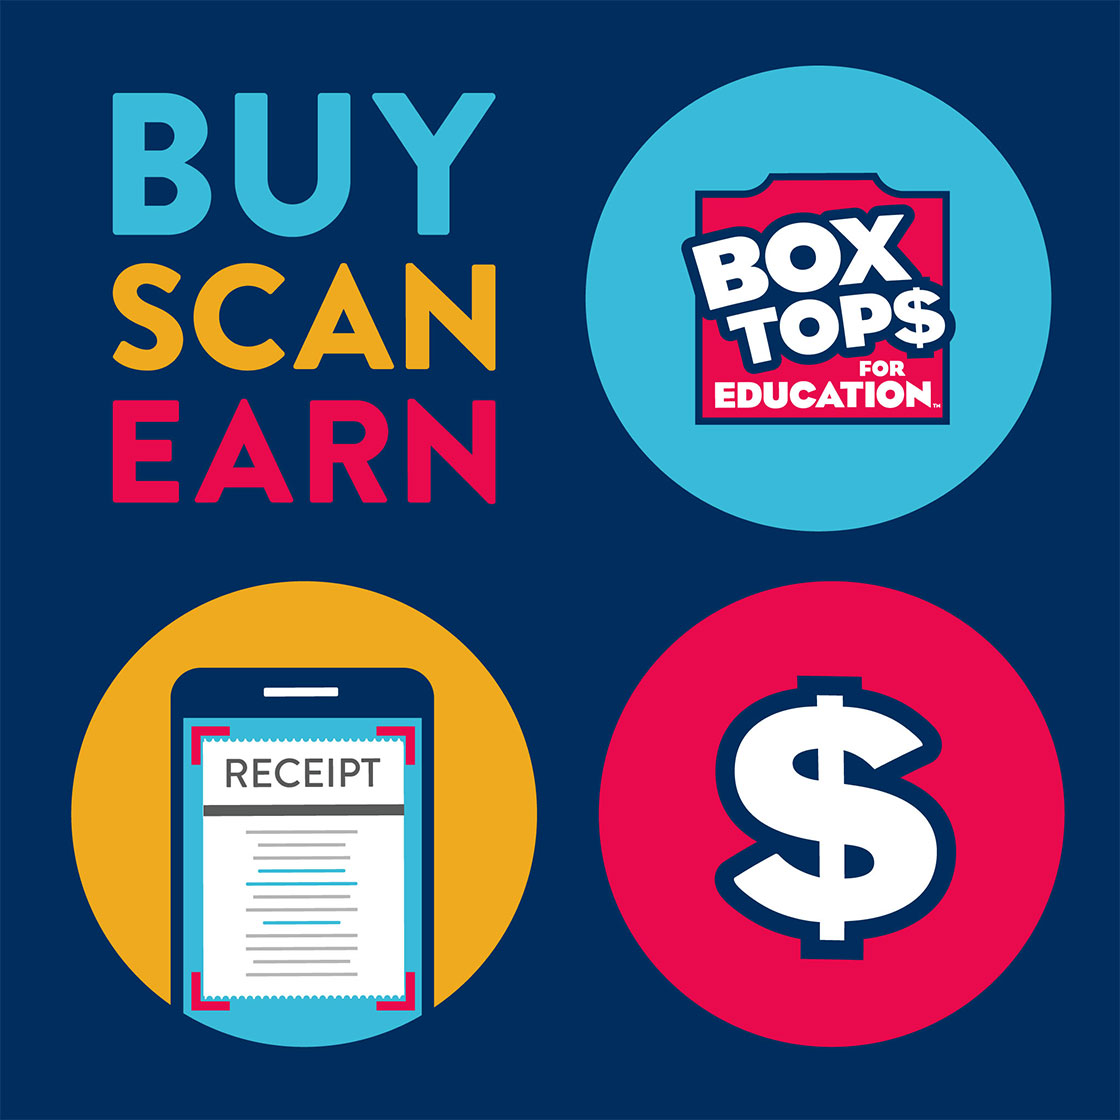 Buy Scan Earn Box tops for Education, click for link